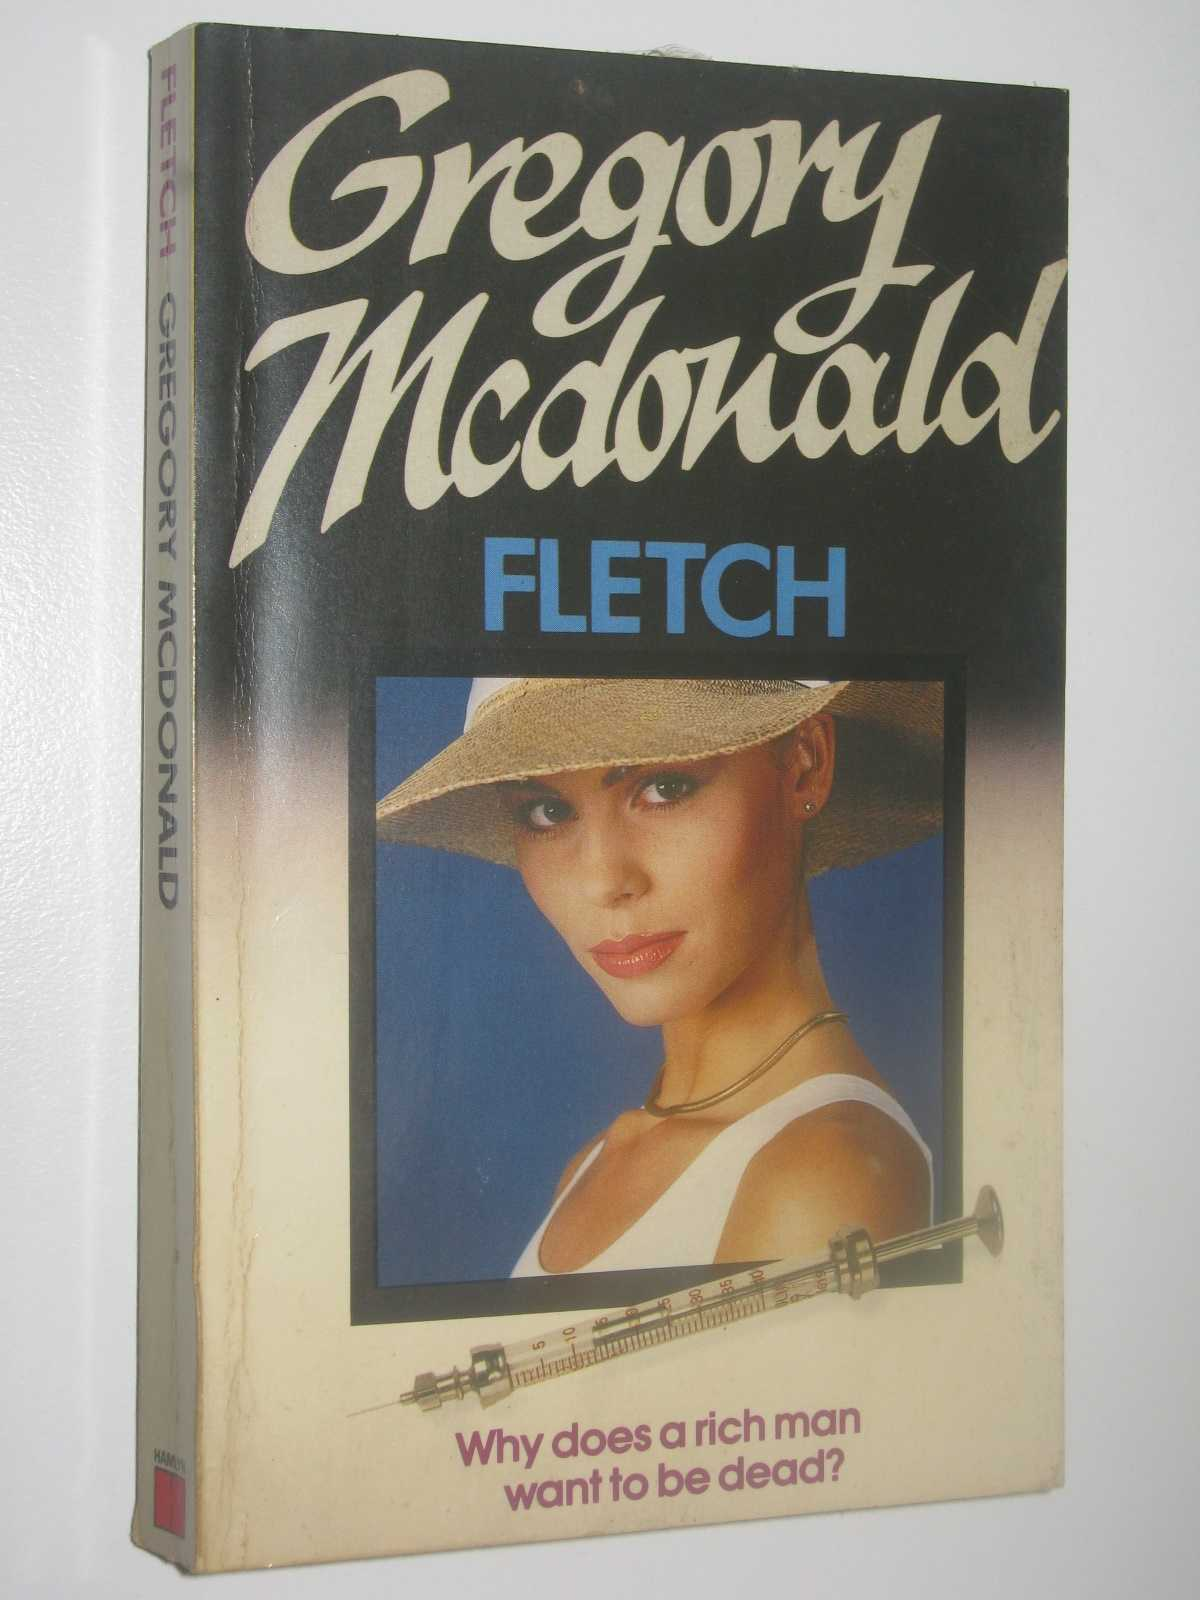 Fletch - Fletch Series #1, Mcdonald, Gregory